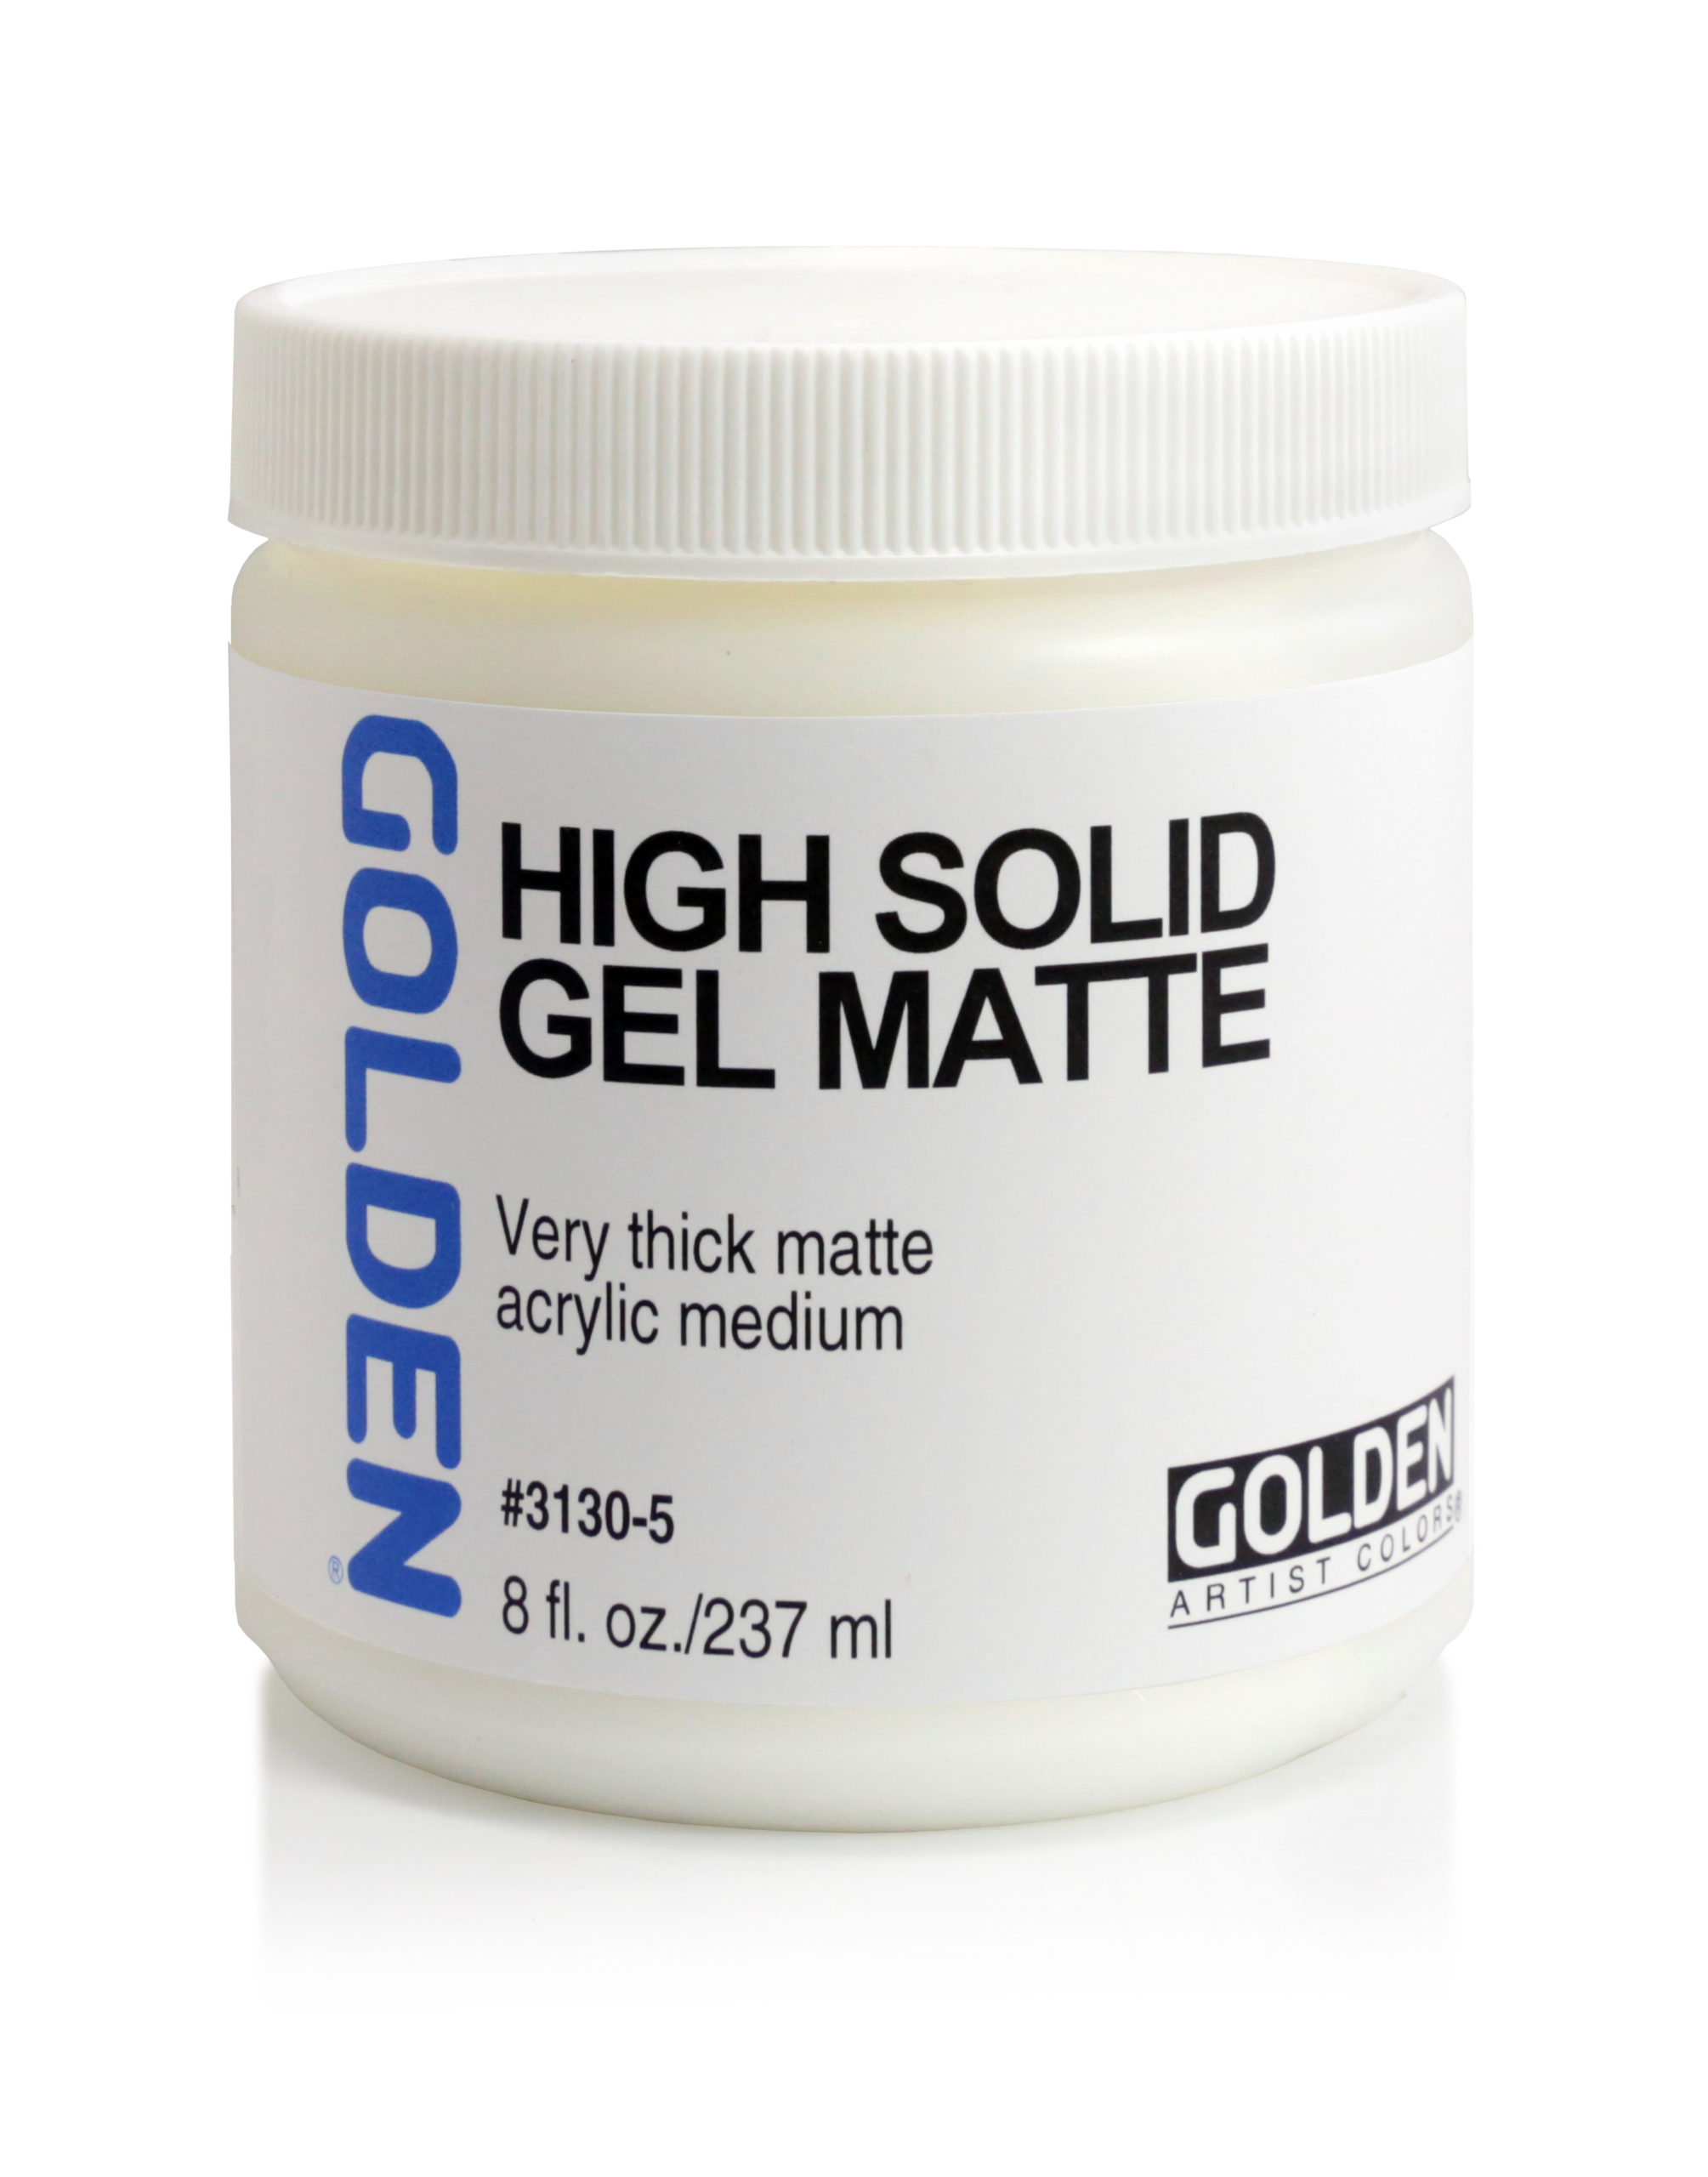 High Solid Gel Matte